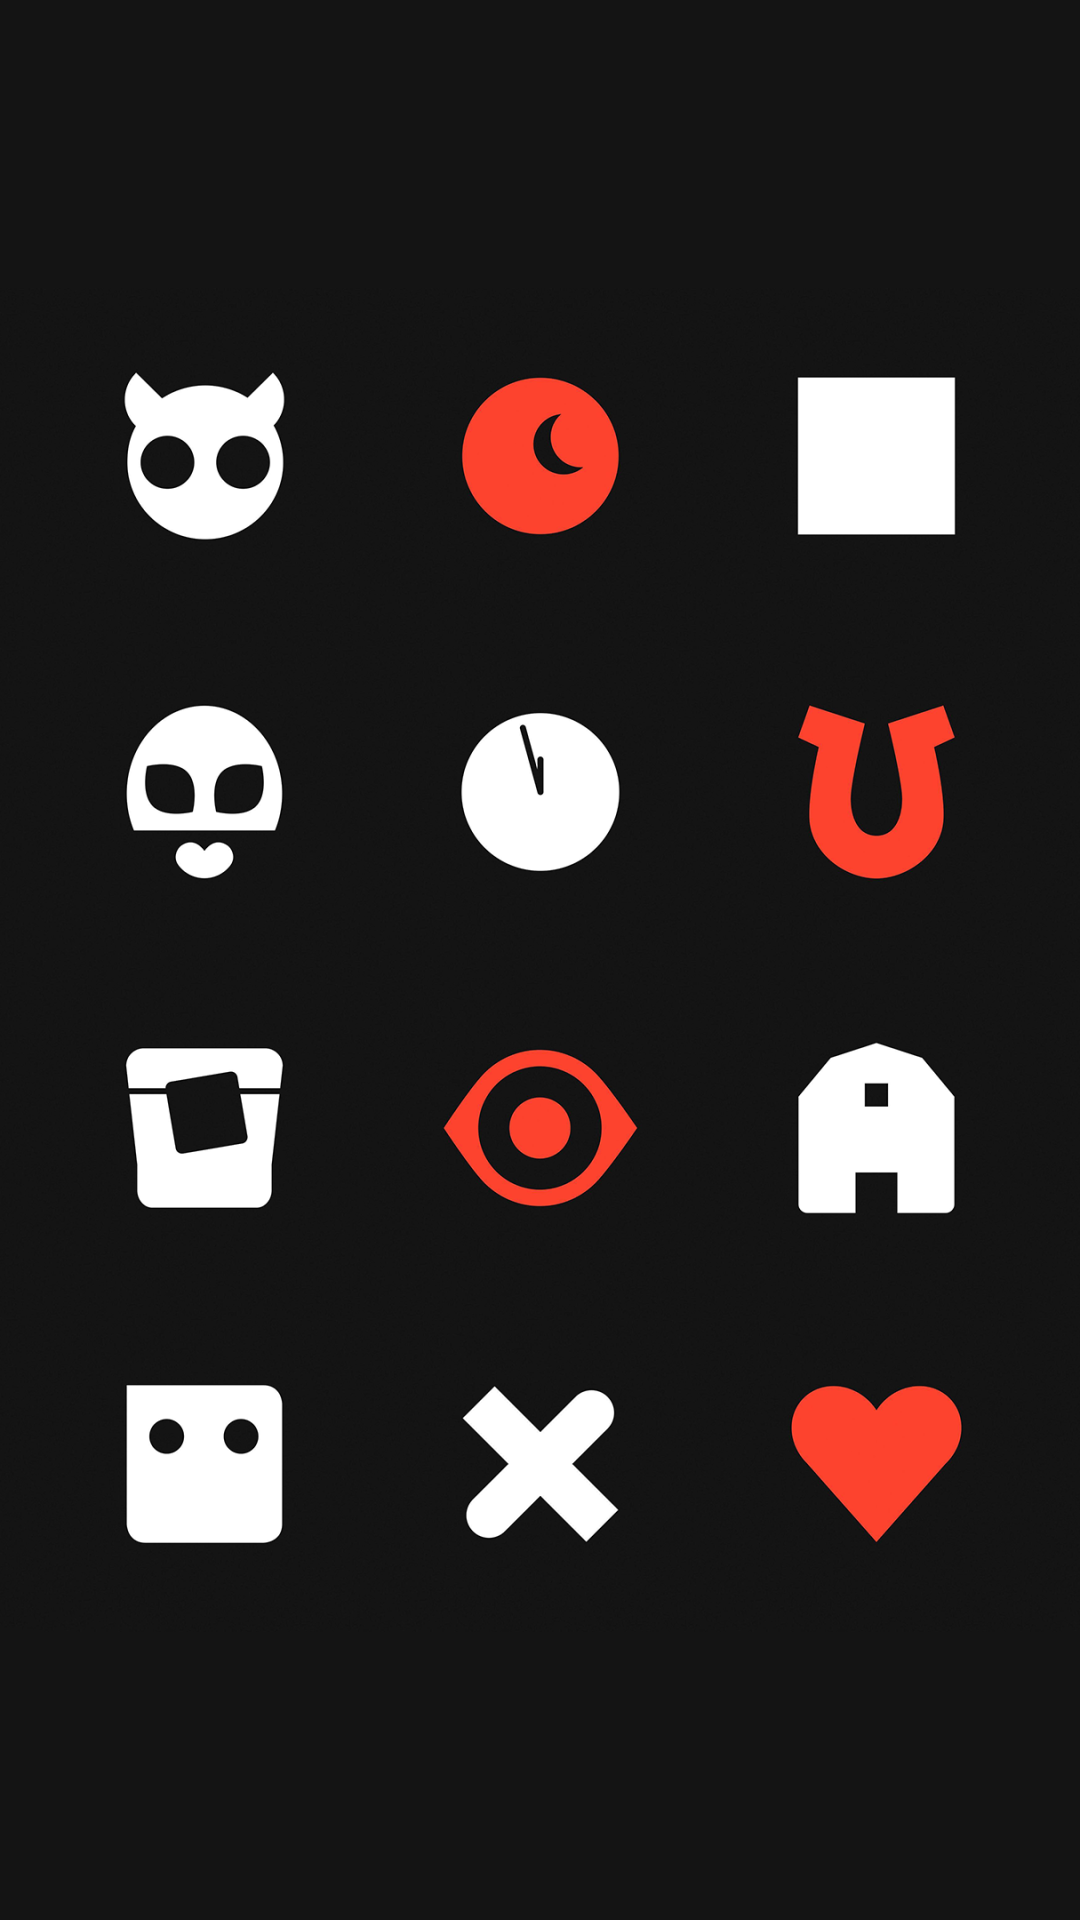 Tv Show Love Death Robots 1080x1920 Wallpaper Id 778889